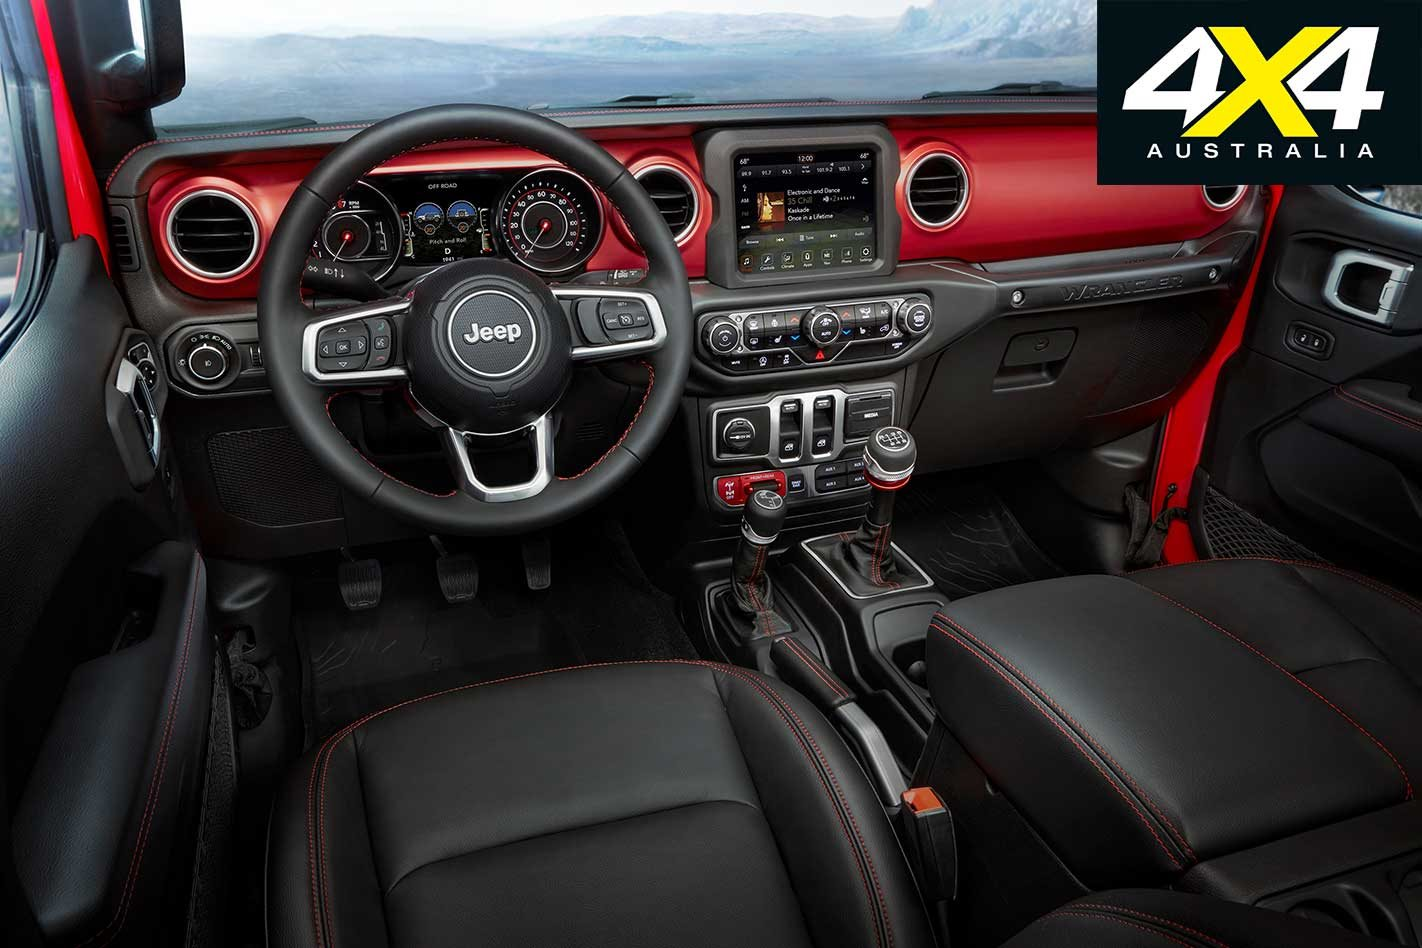 2019 Jeep Jl Wrangler Rubicon On The Trail 4x4 Review Rear Window Defrost Jk Felt As If It Was Hastily Thrown Together After Someone Yelled Tools Down Flips That By Delivering A Cabin Manages To Feel Both